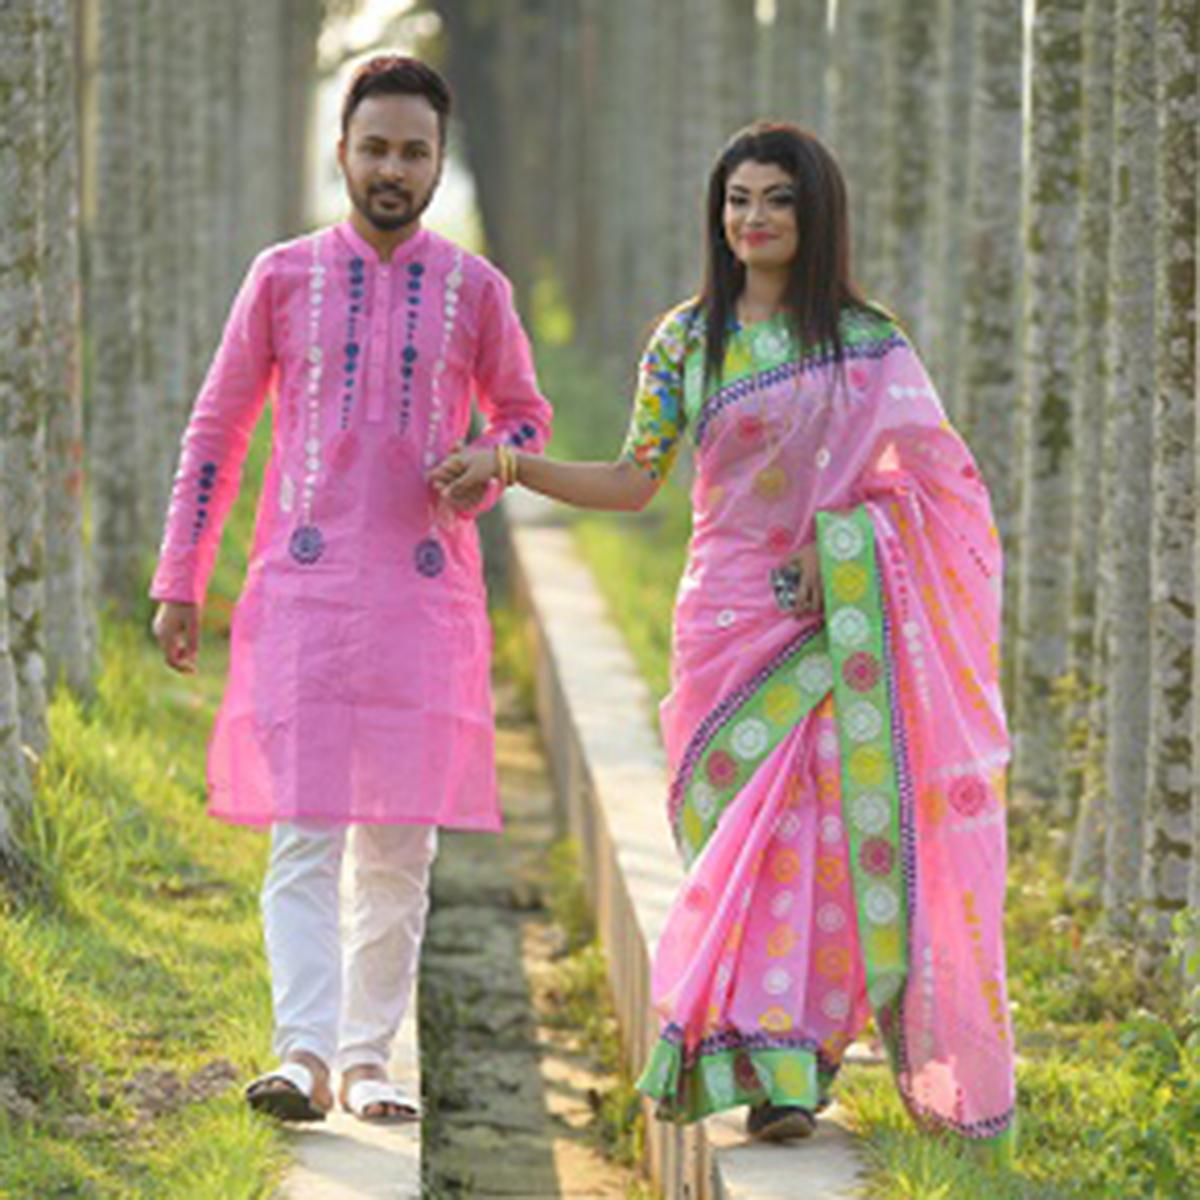 Product details of combo of pink cotton boishakhi saree and panjabi for couple